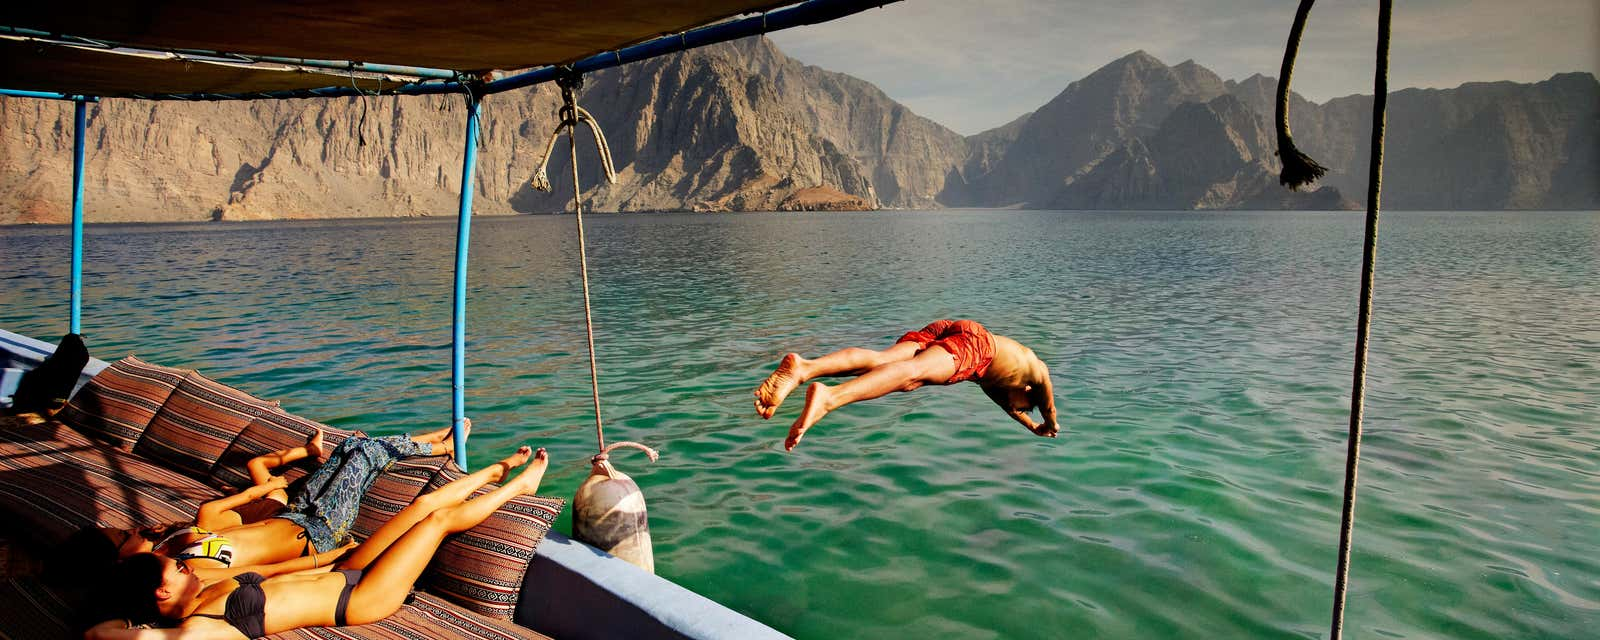 A man diving from a boat on the Musandam Coast, Oman.